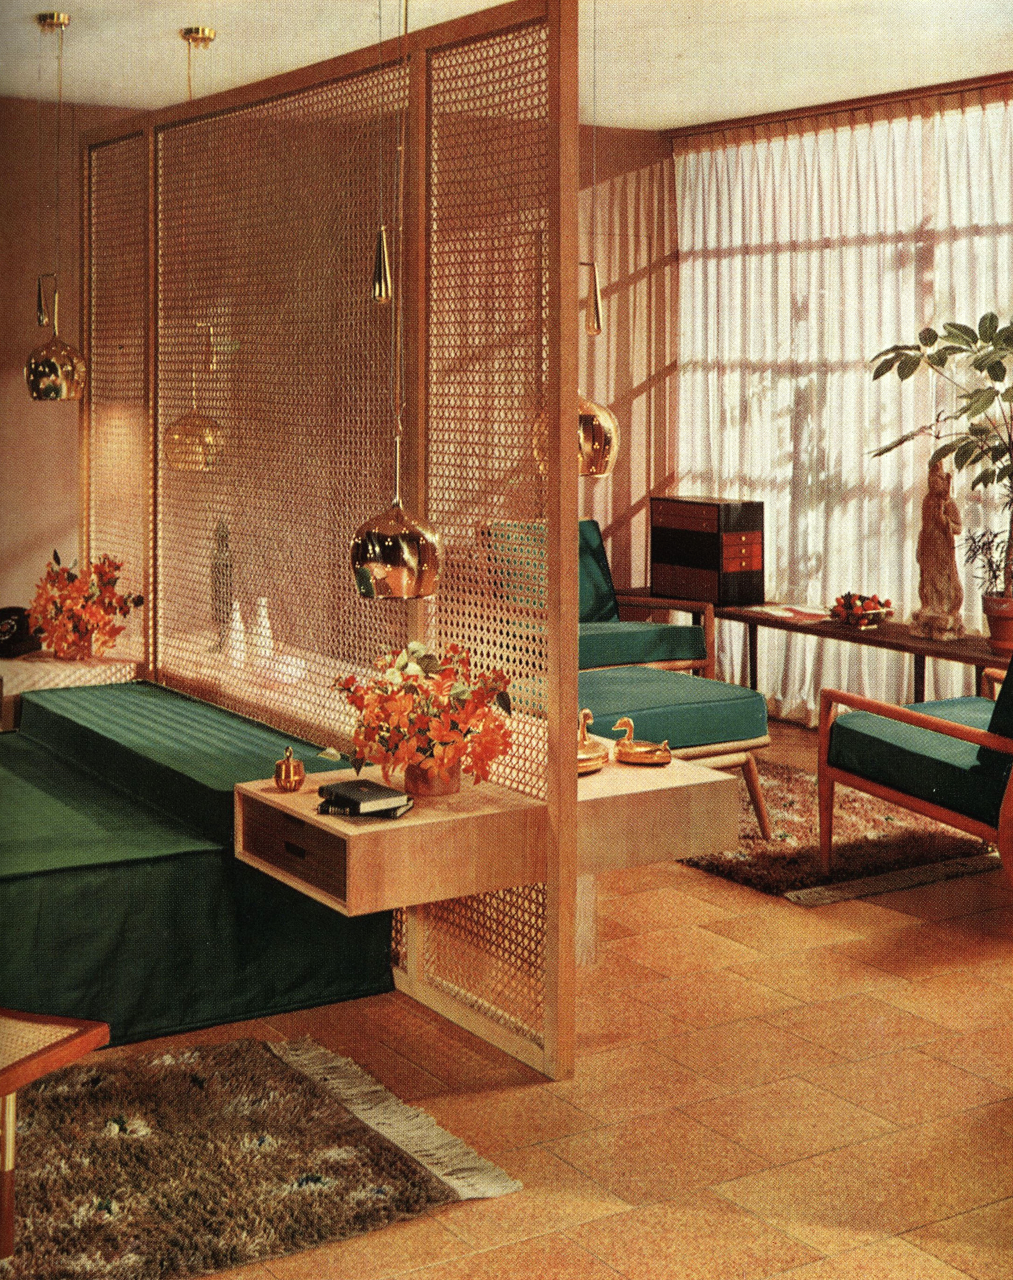 80s master bedroom  The Giki Tiki  Photo  Beautiful Spacesss  Pinterest  Mid century